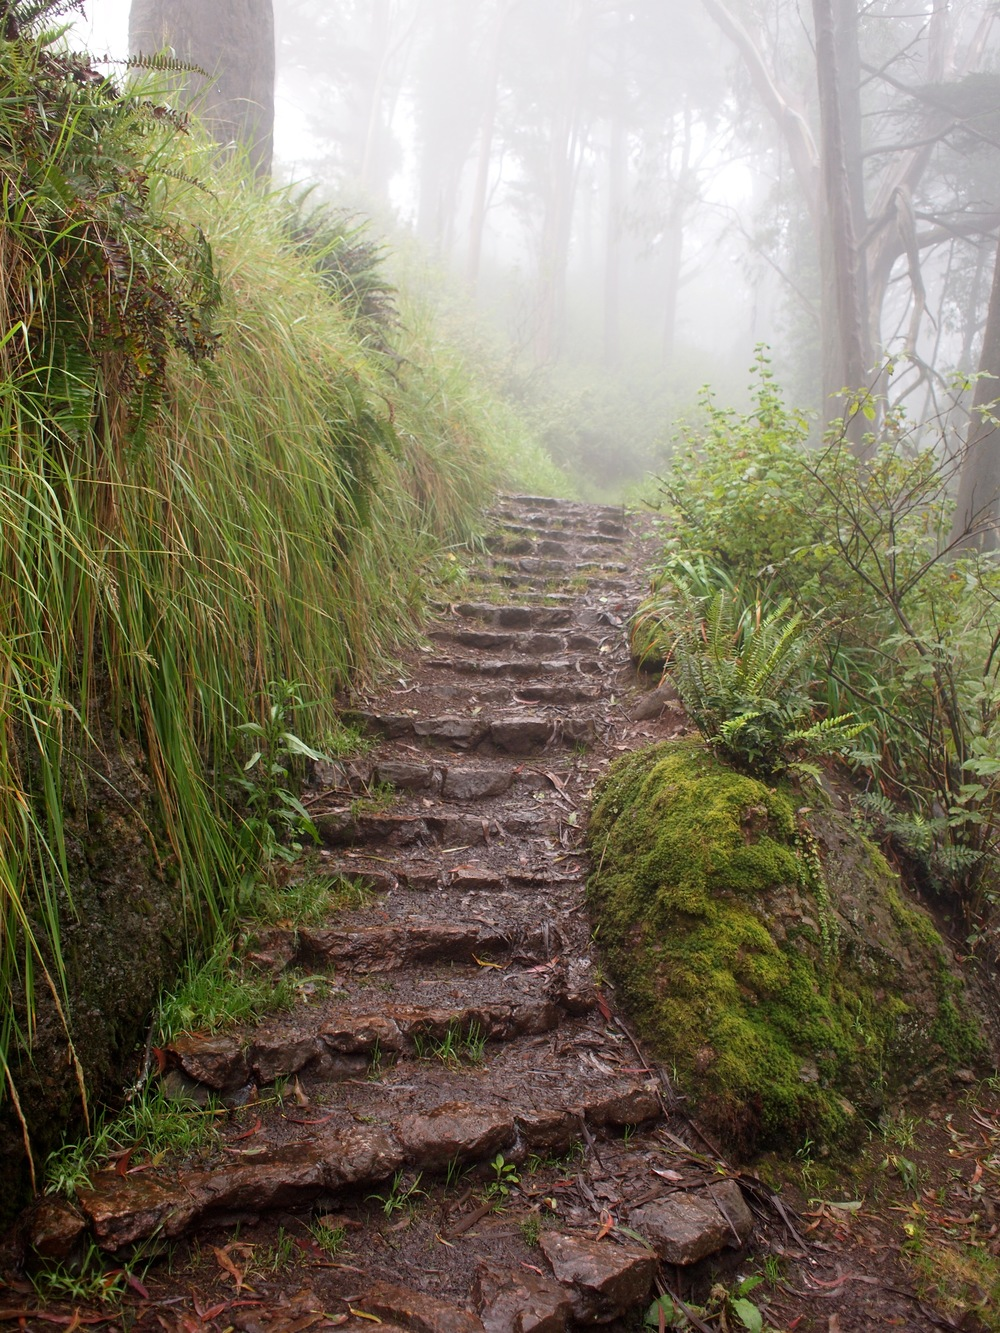 The steps leading up to Mount Davidson at Juanita Way offer a great hike with breathtaking views.